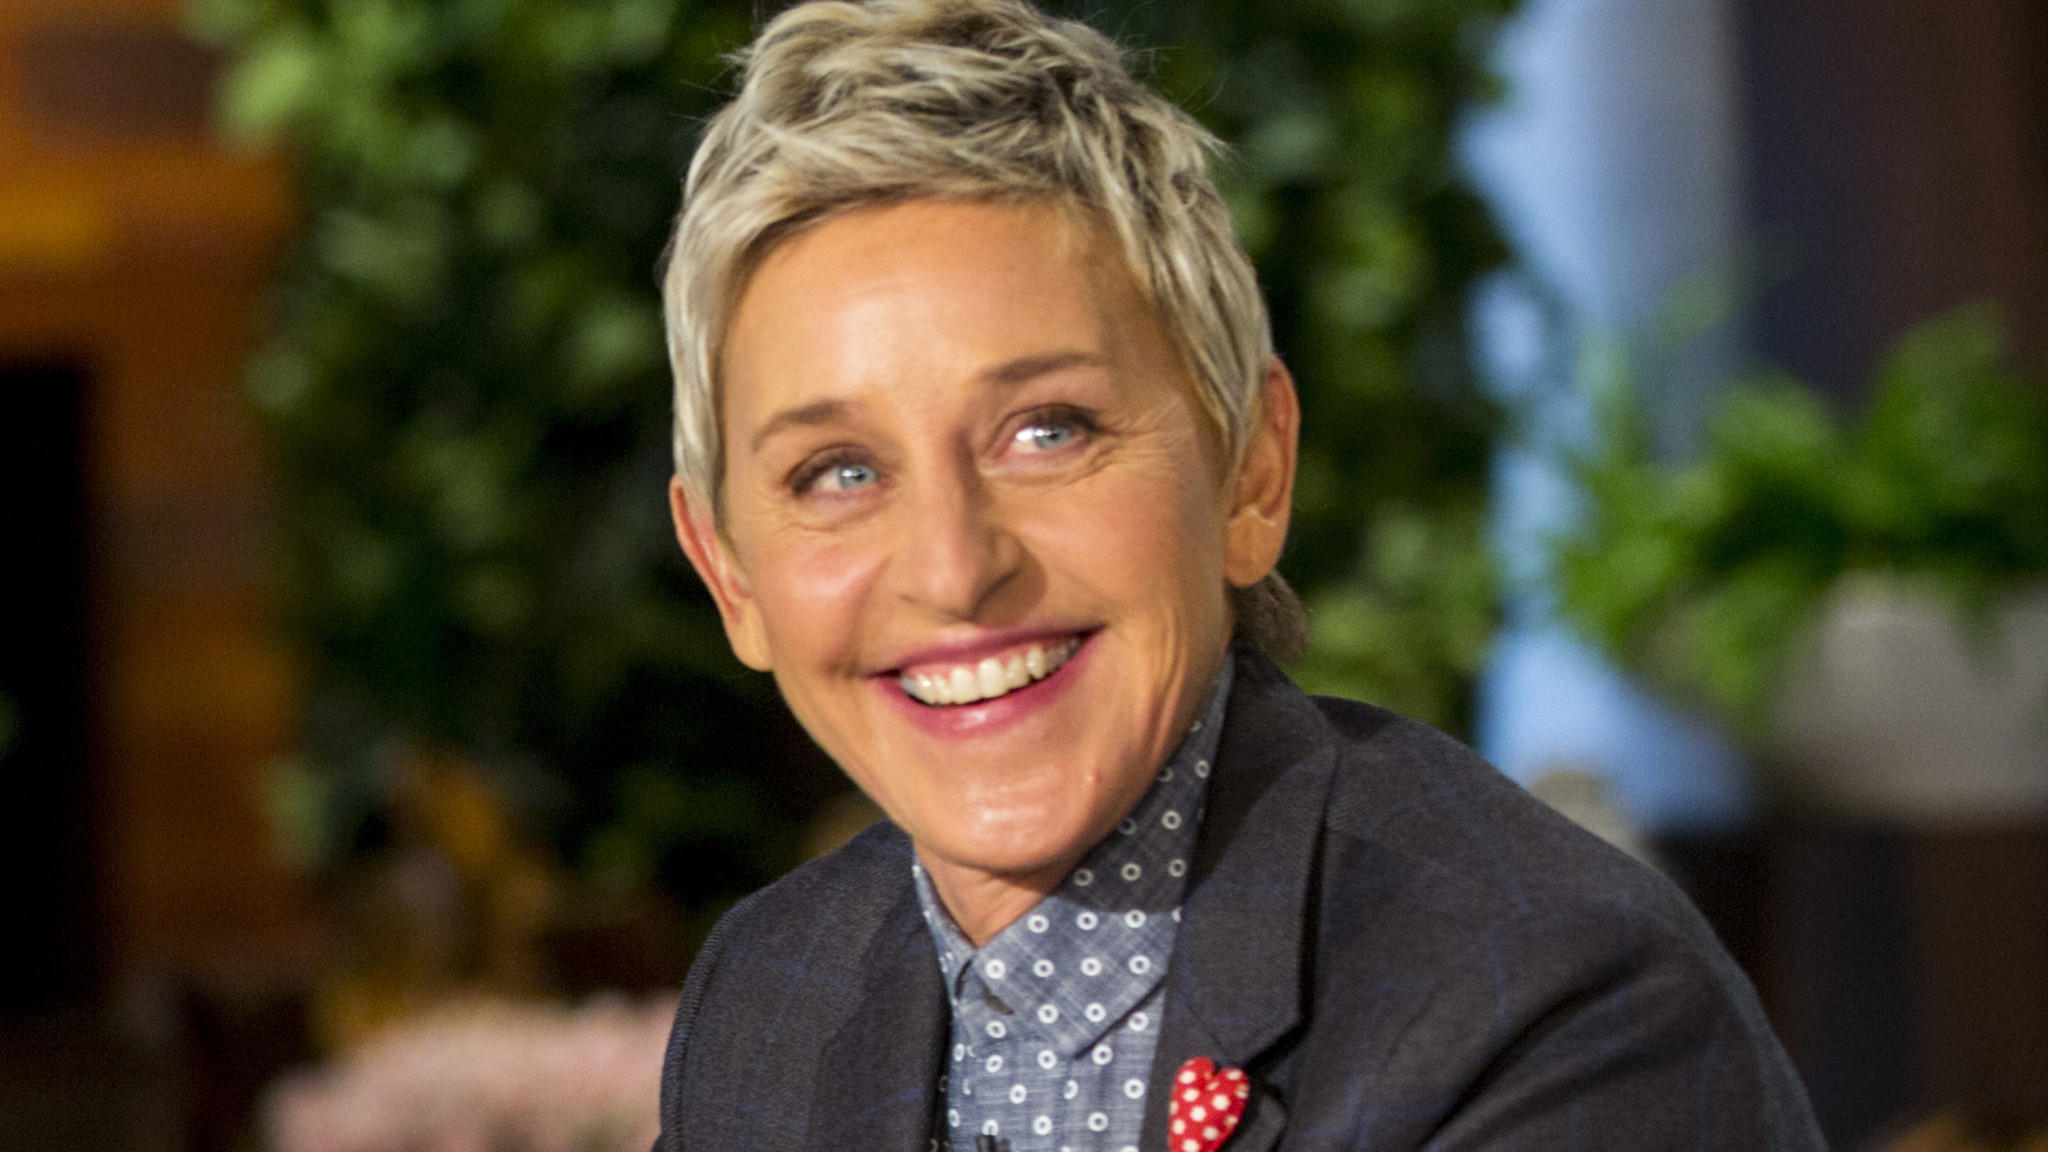 Ellen DeGeneres is returning to prime time